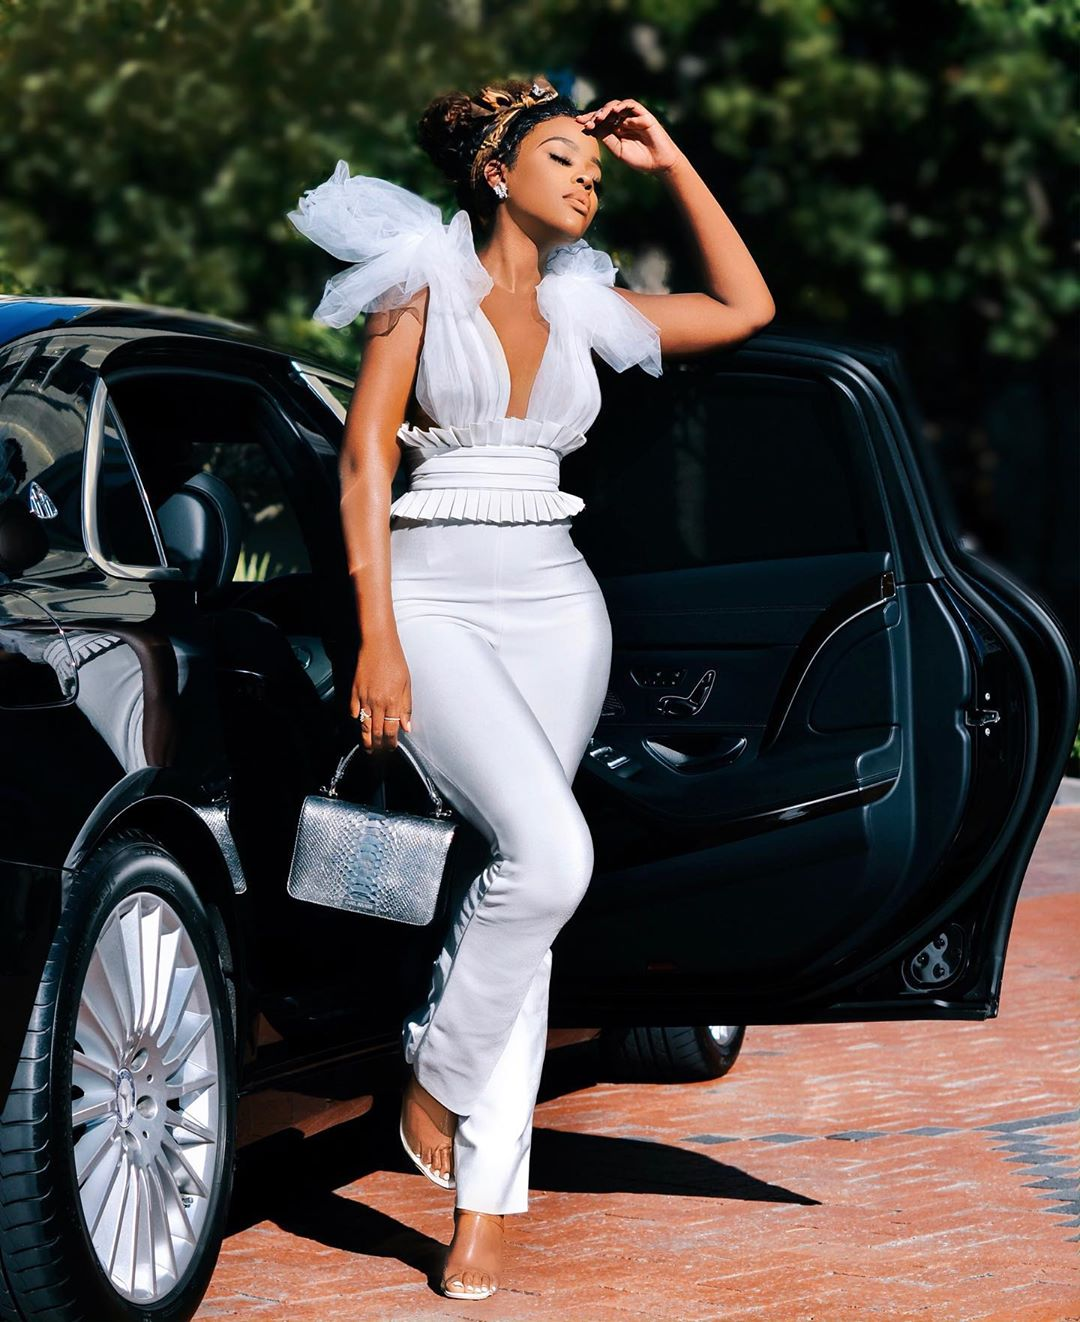 Julitha-kabete-african-celebs-he-most-rave-worthy-looks-on-women-across-africa-–-october-12th